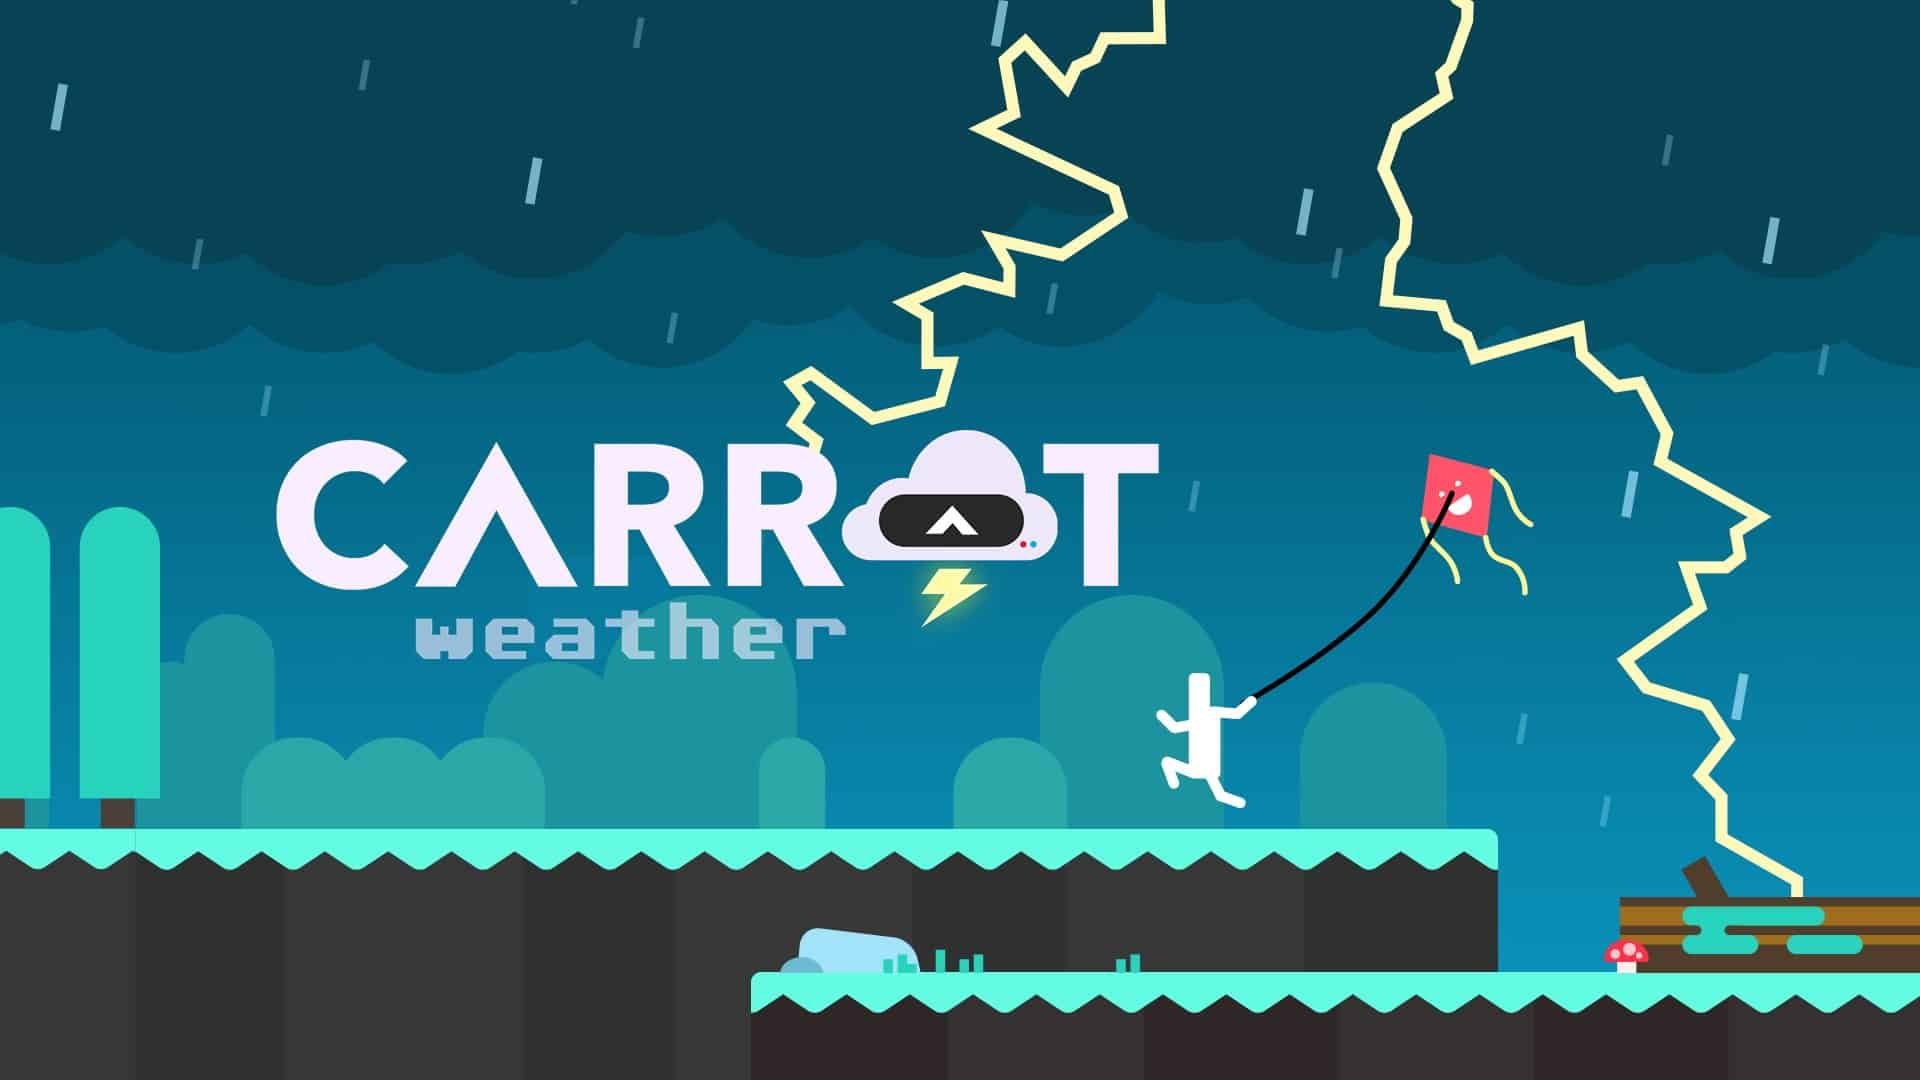 Carrot, the 'funniest' weather app on iOS.